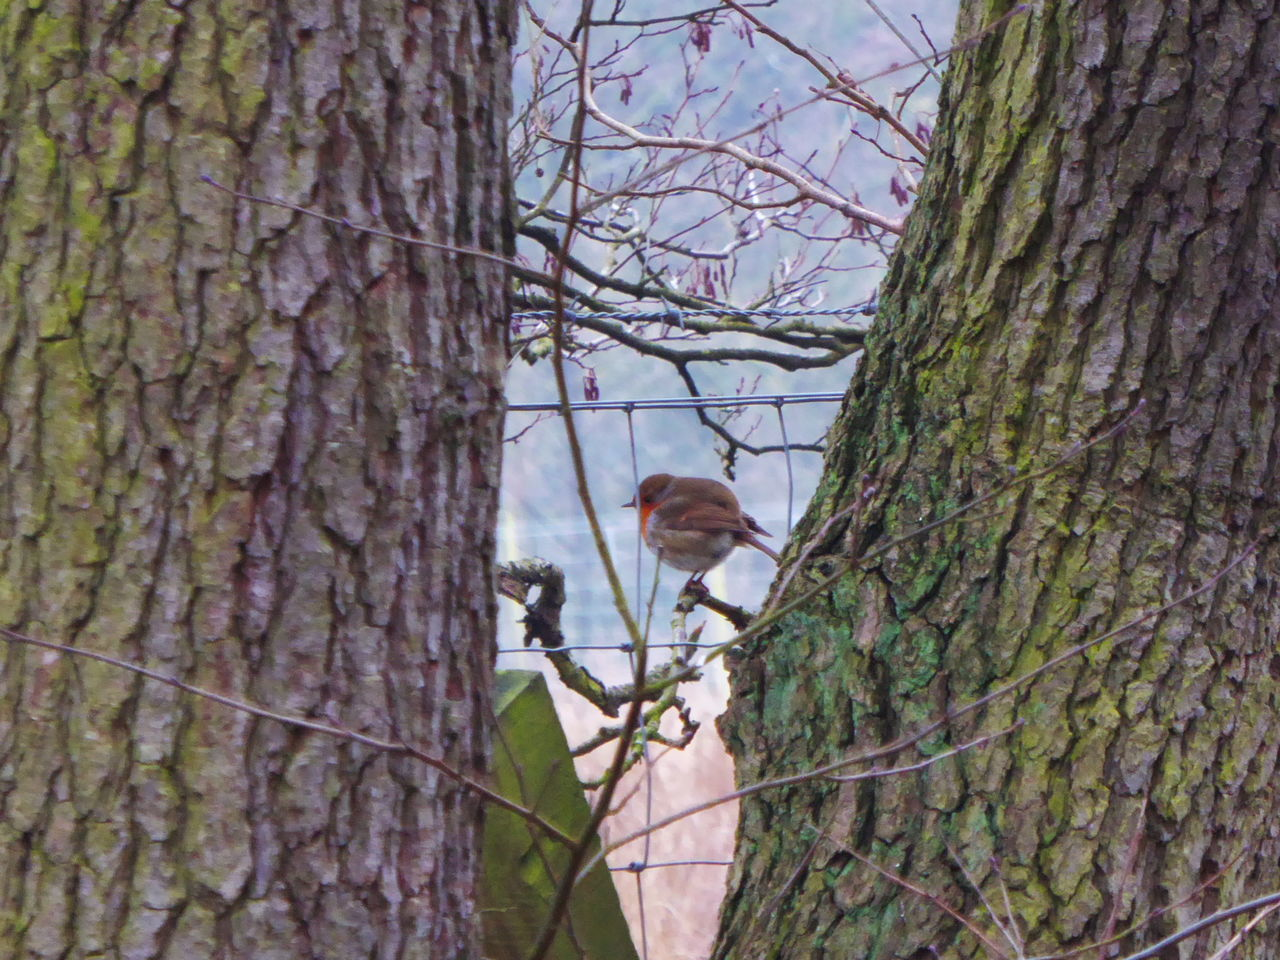 From the start this little lovely stayed with me & i enjoyed the company 🤗💕 Robin Robin Redbreast Bird Photography Bird Perching Tree Tree Trunk Nature Animal Themes No People Day Outdoors Beauty In Nature Animals In The Wild